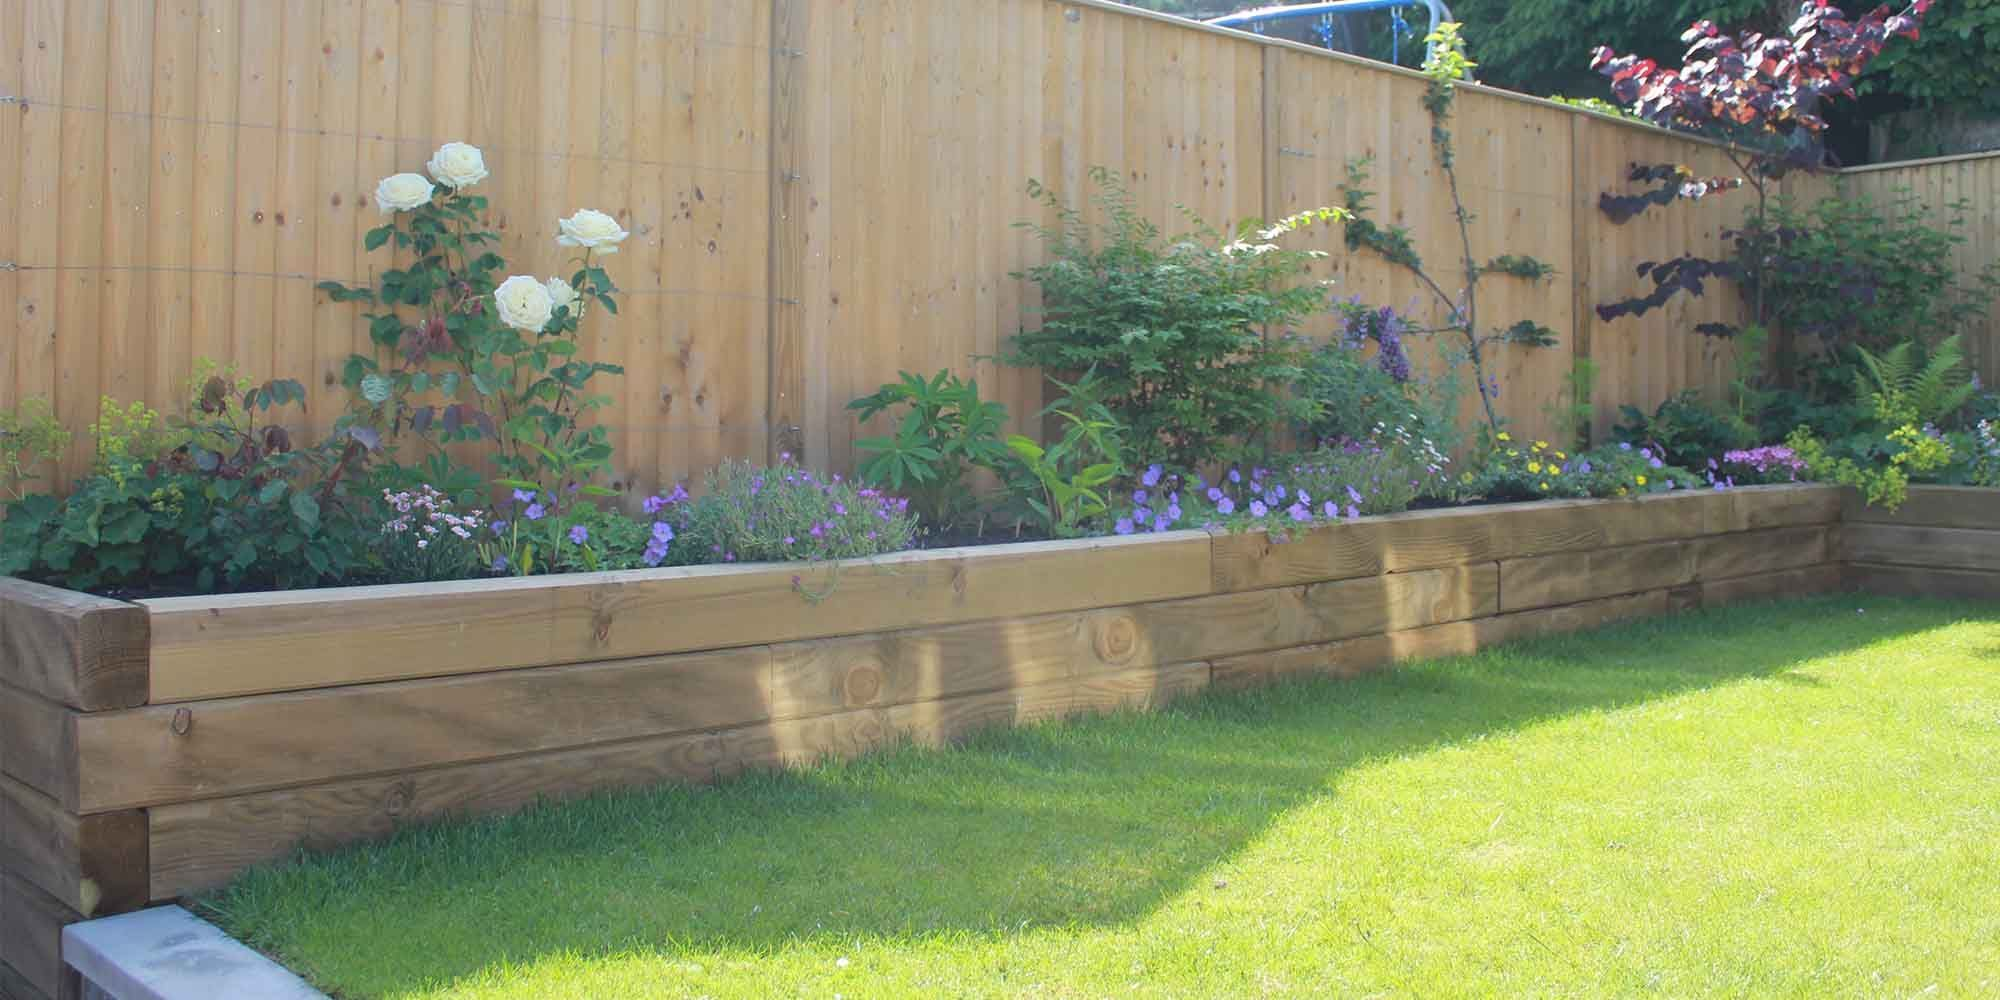 Top Tips Raised Garden Bed Ideas 2020 Modern Design Bed Design Garden Ideas Modern Raised Tips Back Garden Design Sleepers In Garden Raised Garden Backyard landscaping ideas with raised beds